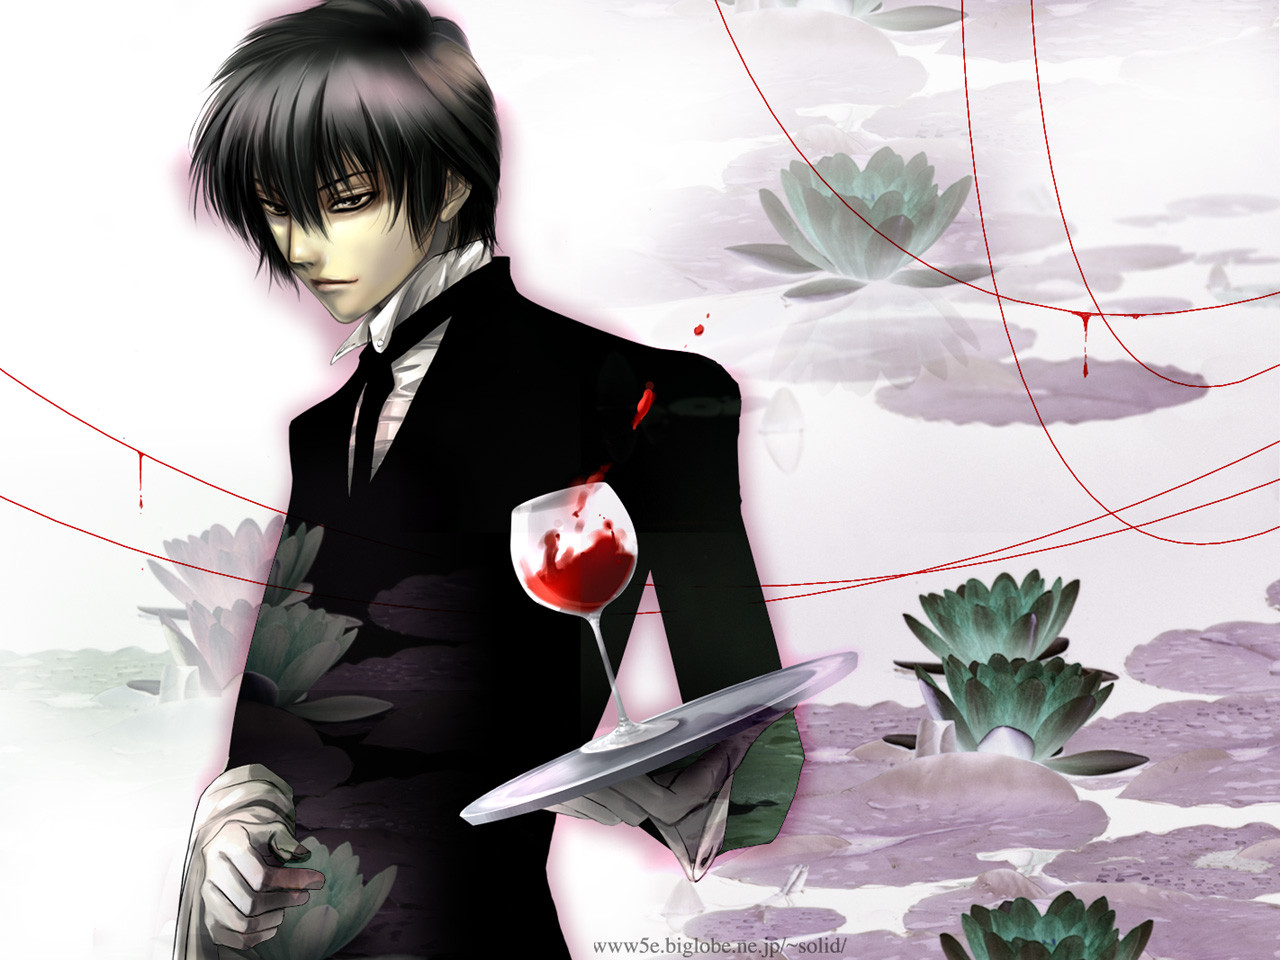 Handsome Anime Boy Wallpapers